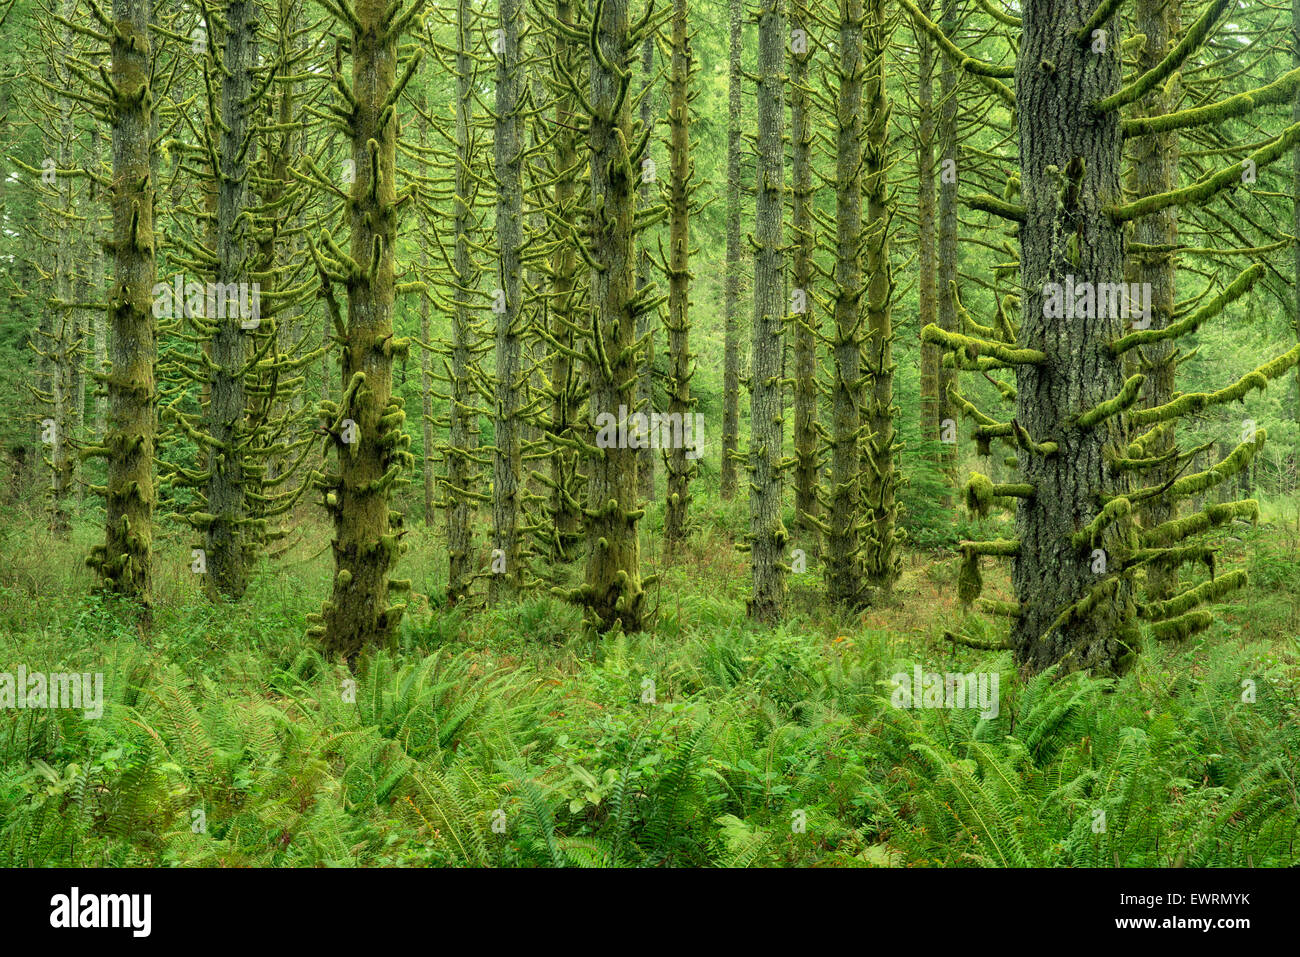 Moss covered Spruce trees and ferns. Silver Falls State Park, Oregon - Stock Image